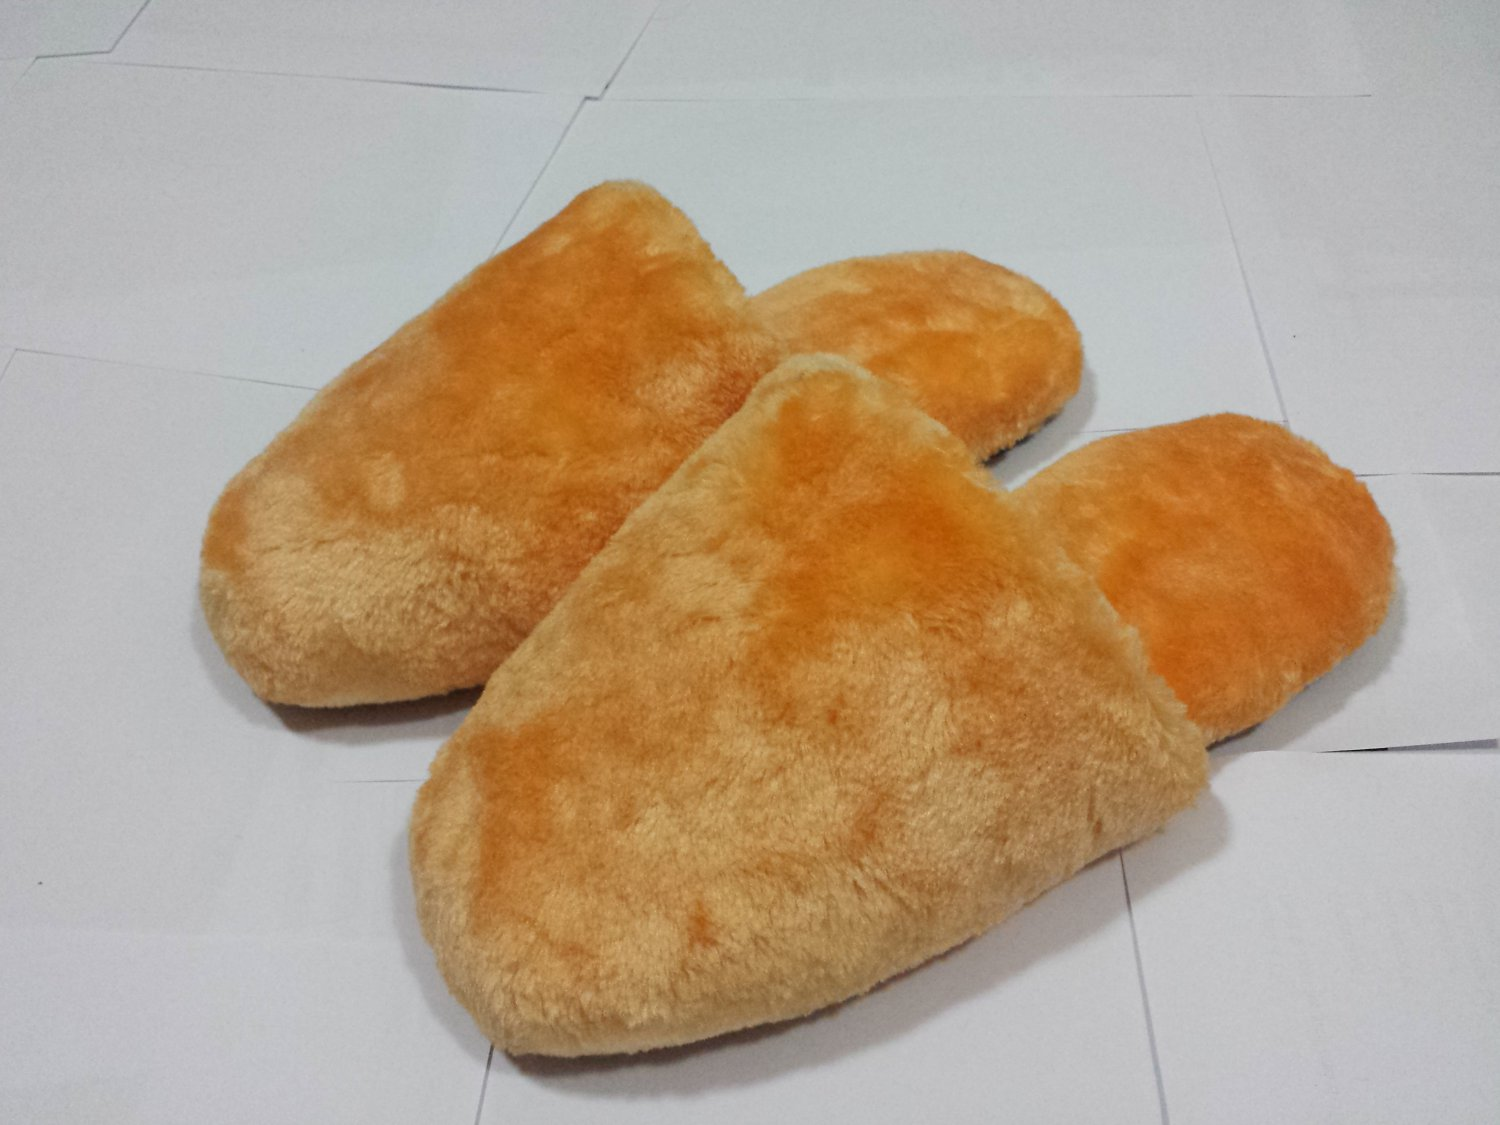 Women Plush Slippers Orange colour NEW $9.99